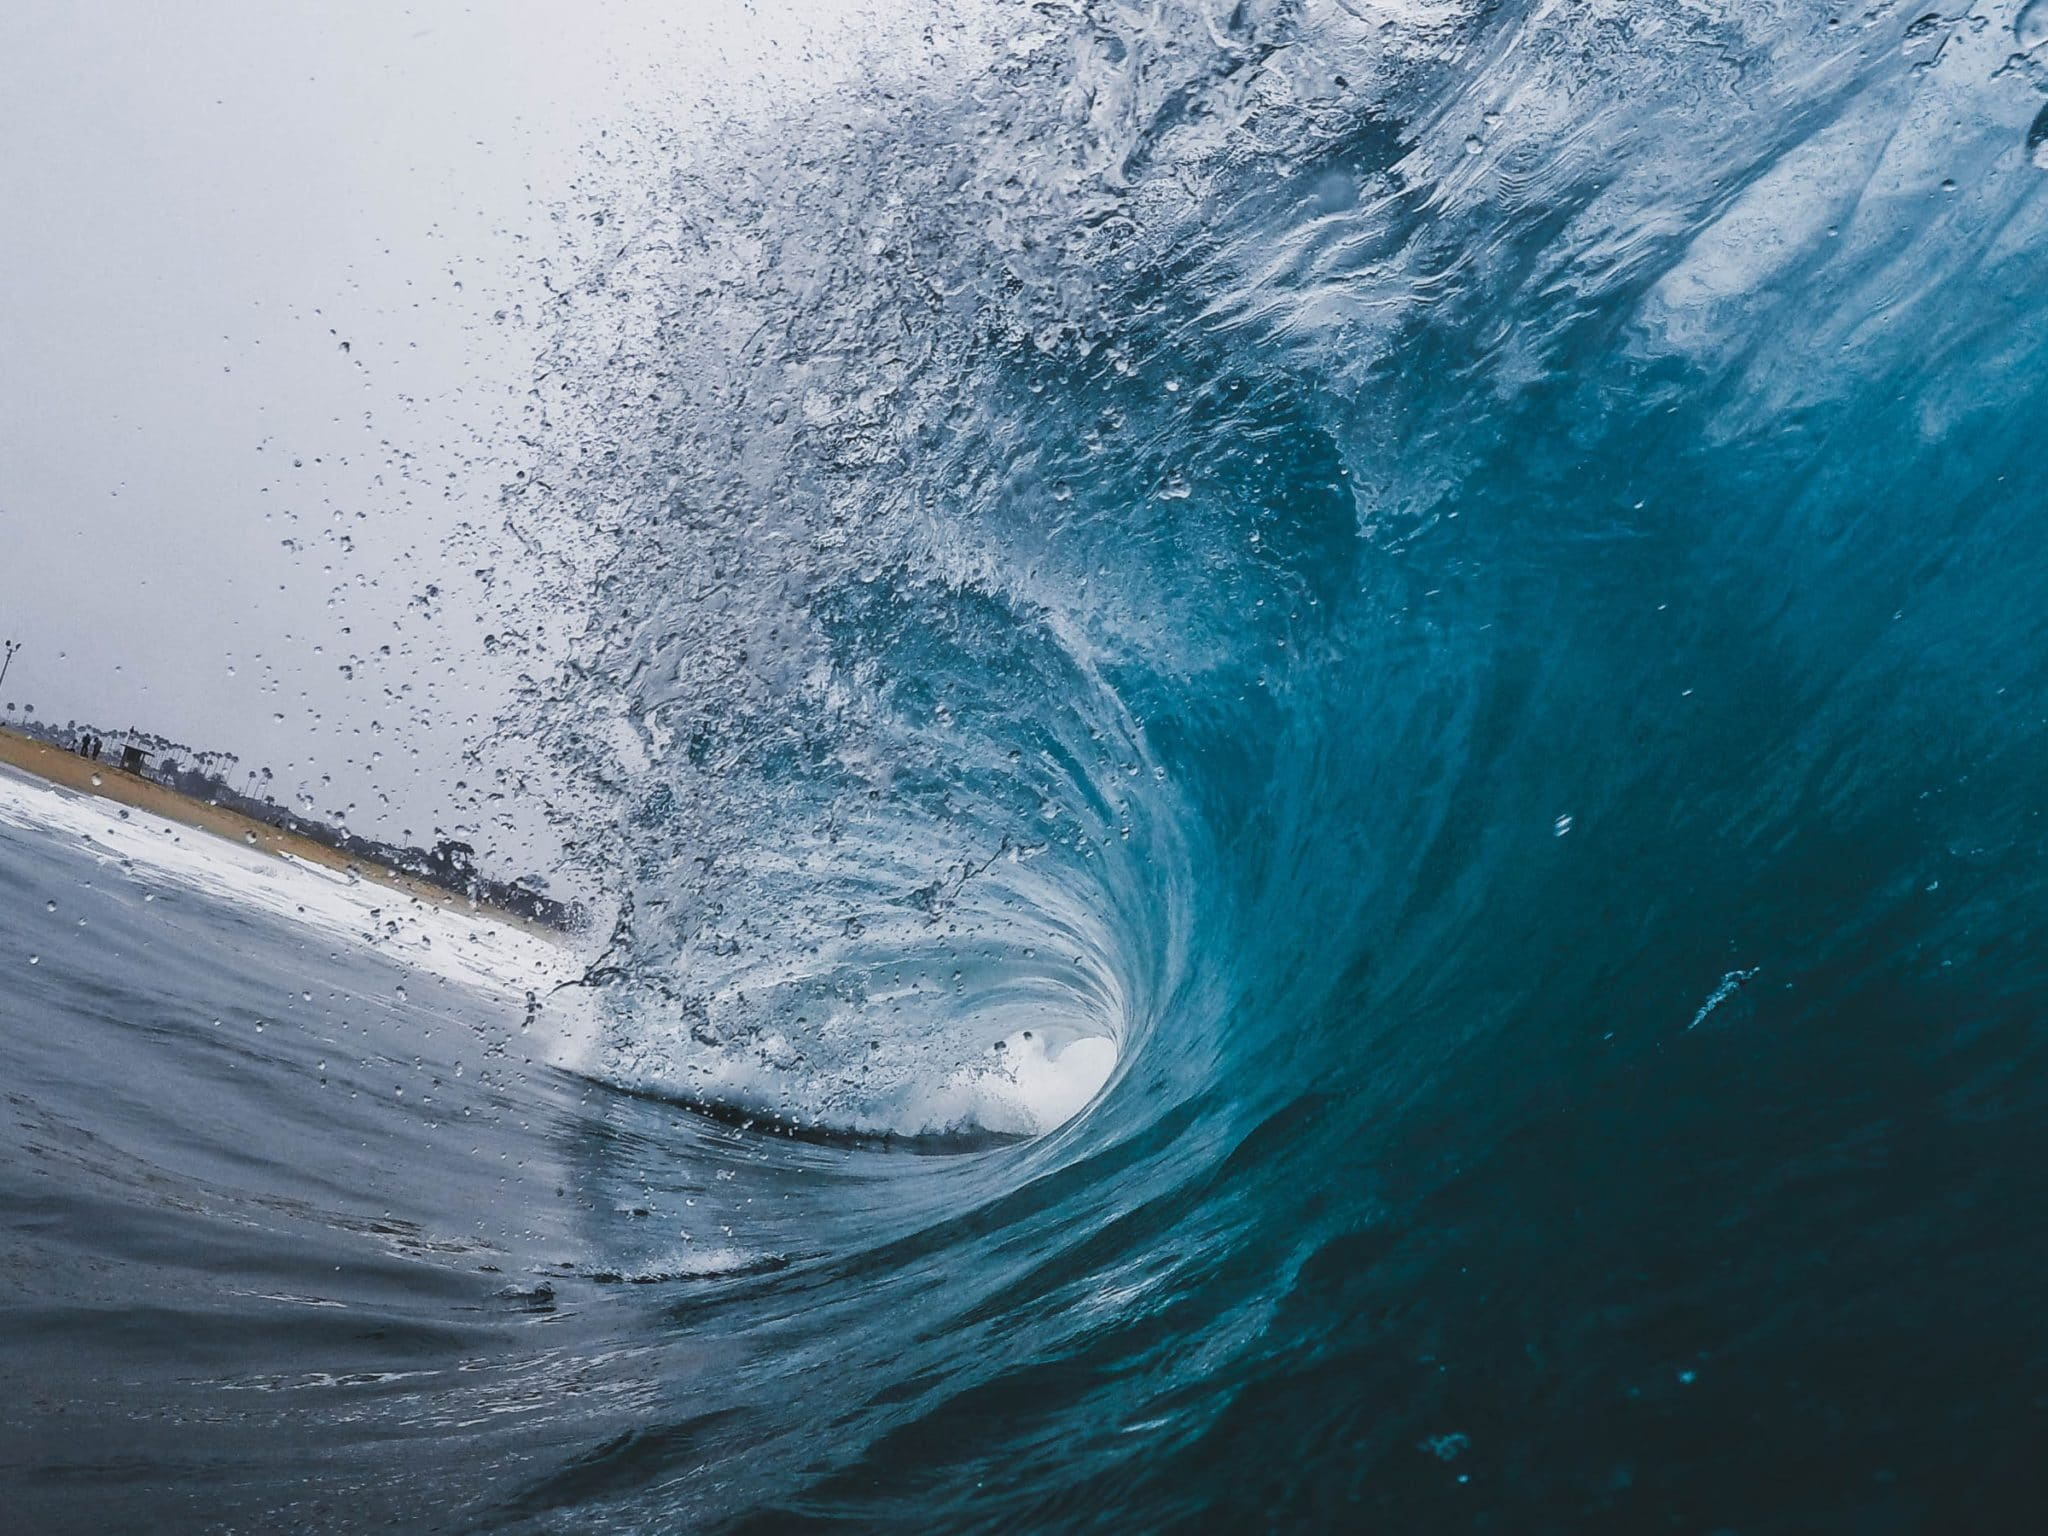 Worried about the next wave? Photo by Jeremy Bishop on Unsplash